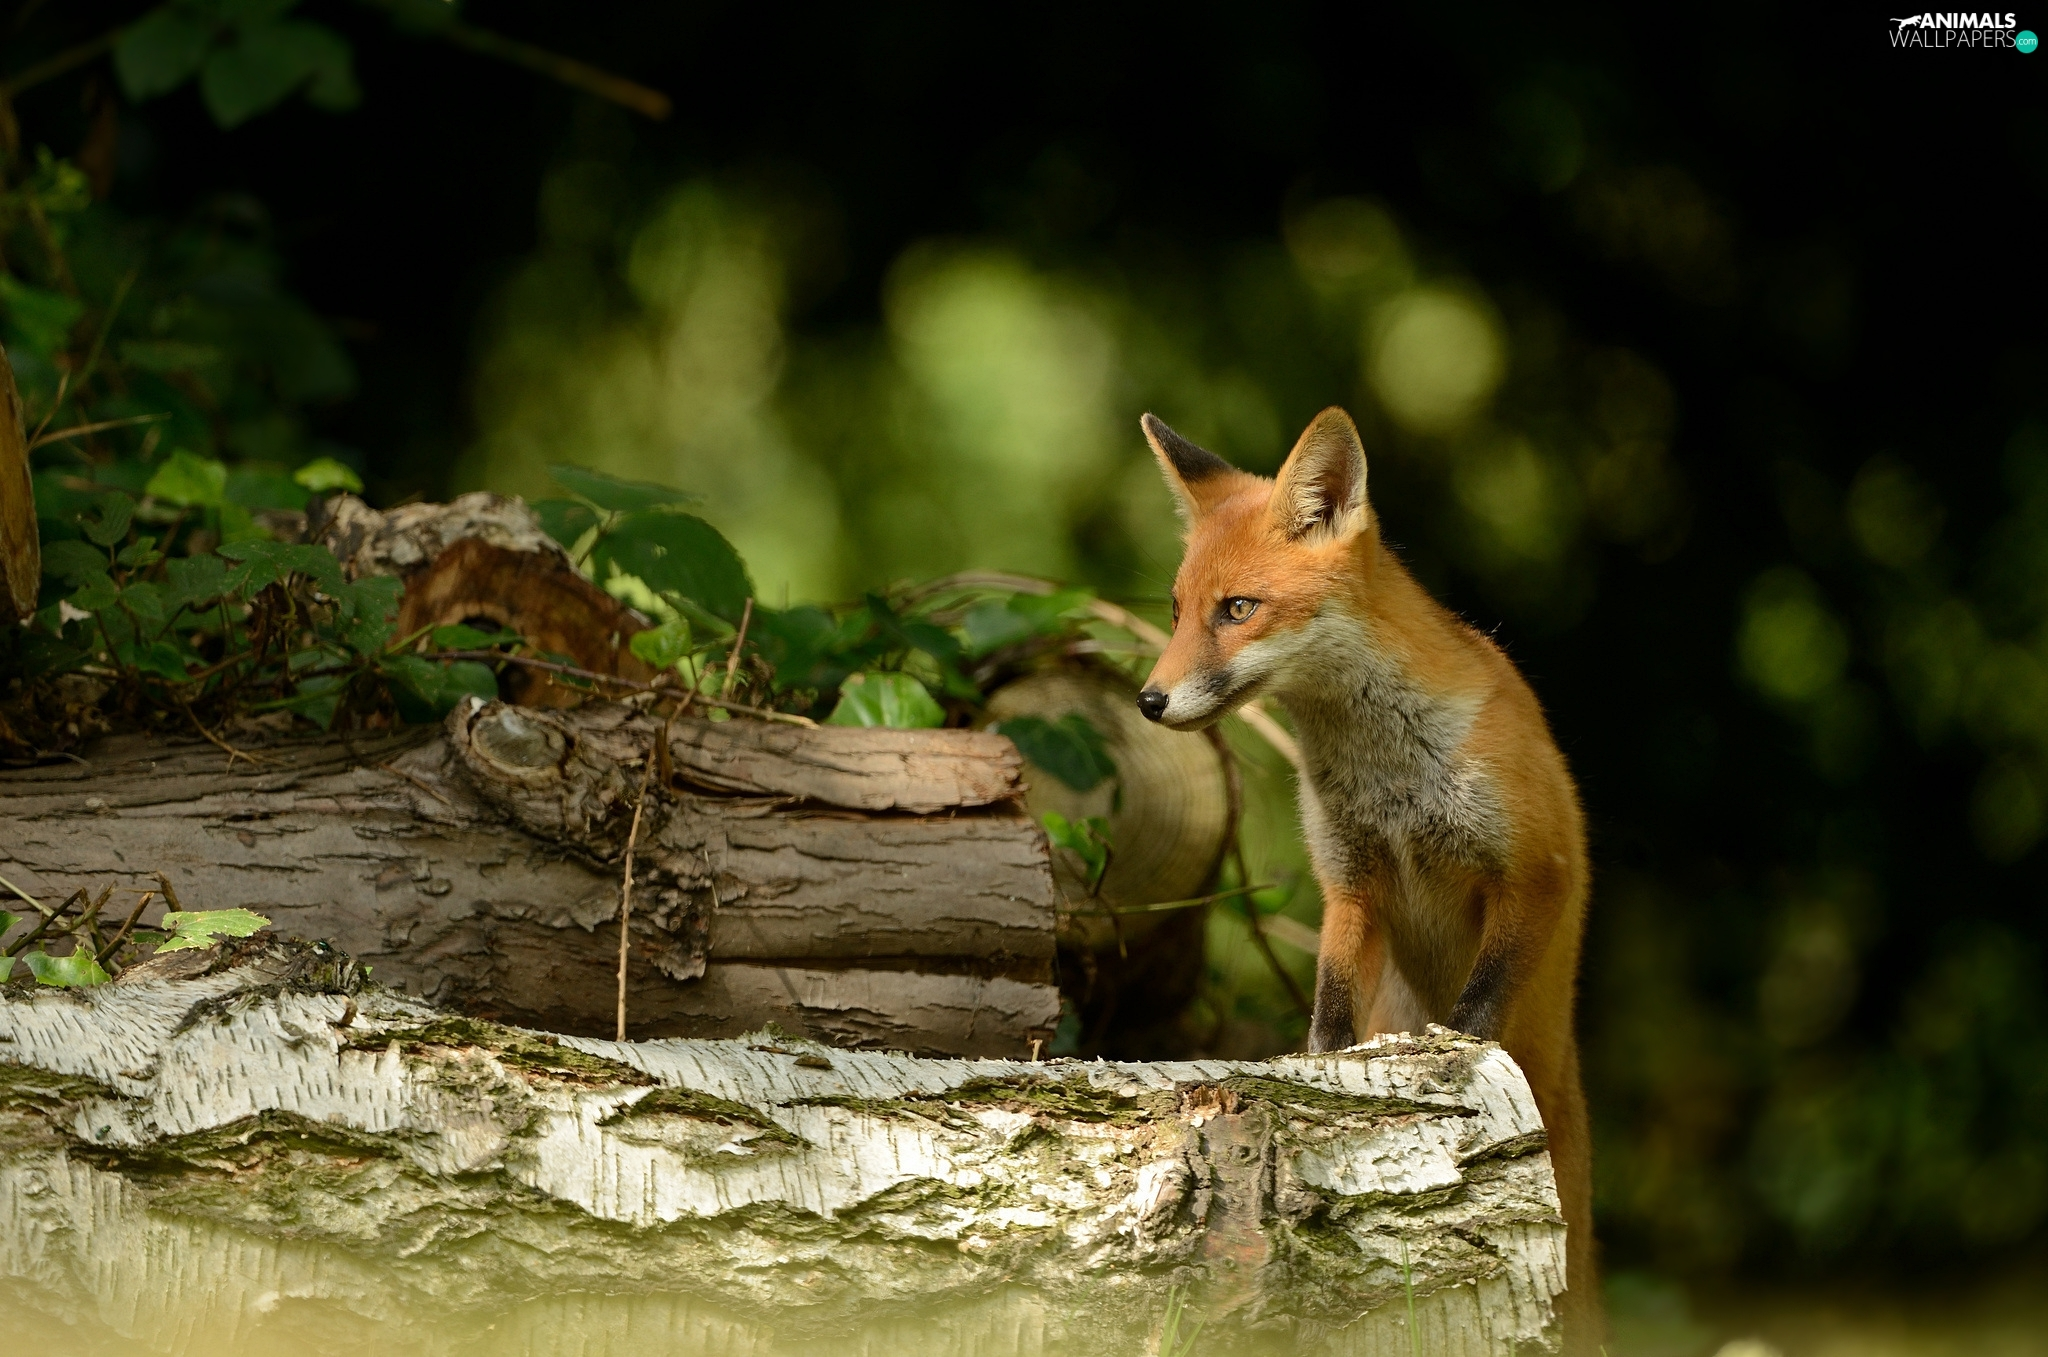 Fox, trees, viewes, Logs